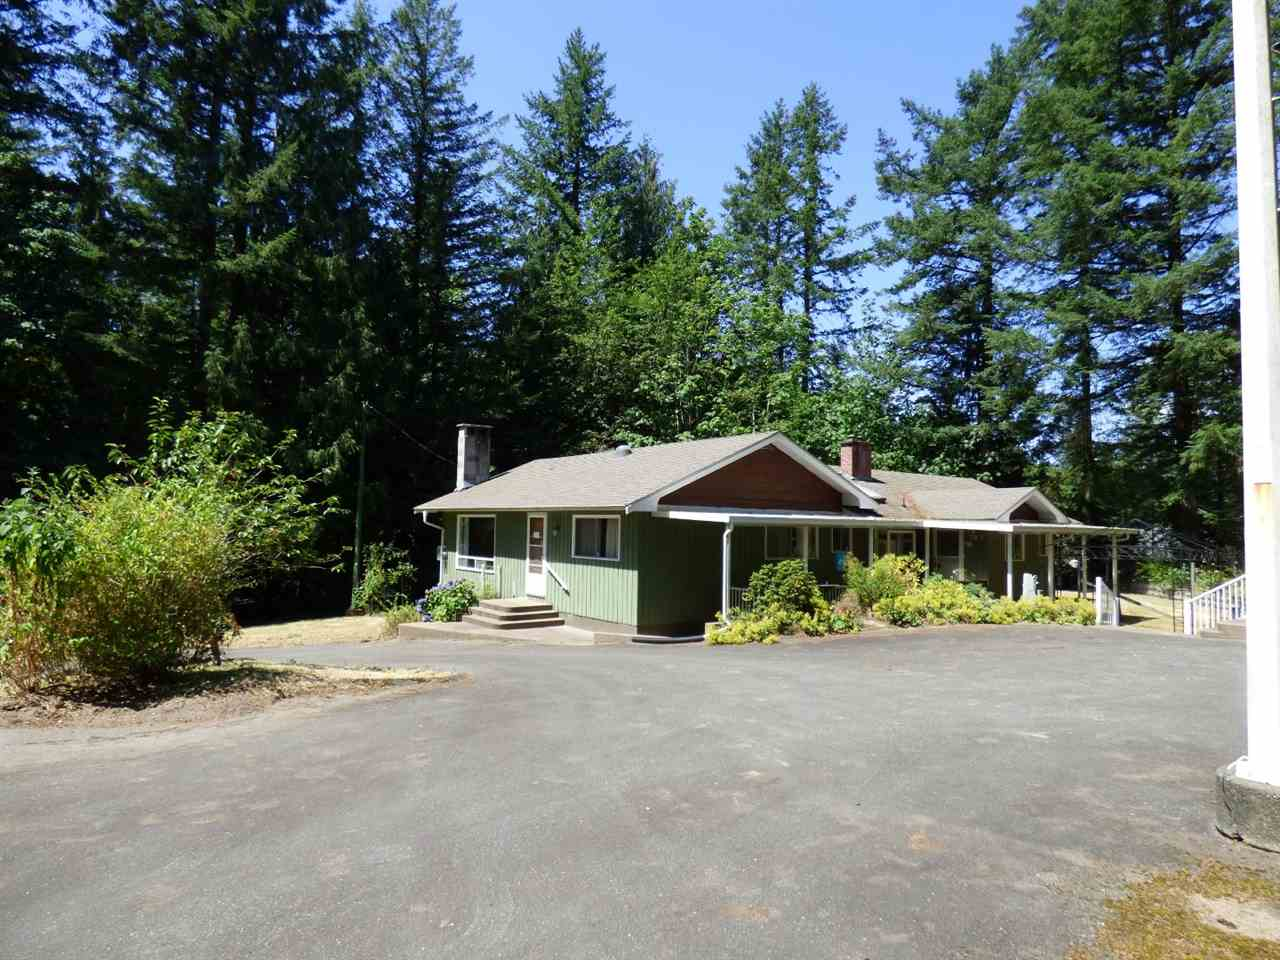 Main Photo: 3636 COLUMBIA VALLEY Road: Cultus Lake House for sale : MLS®# R2189345